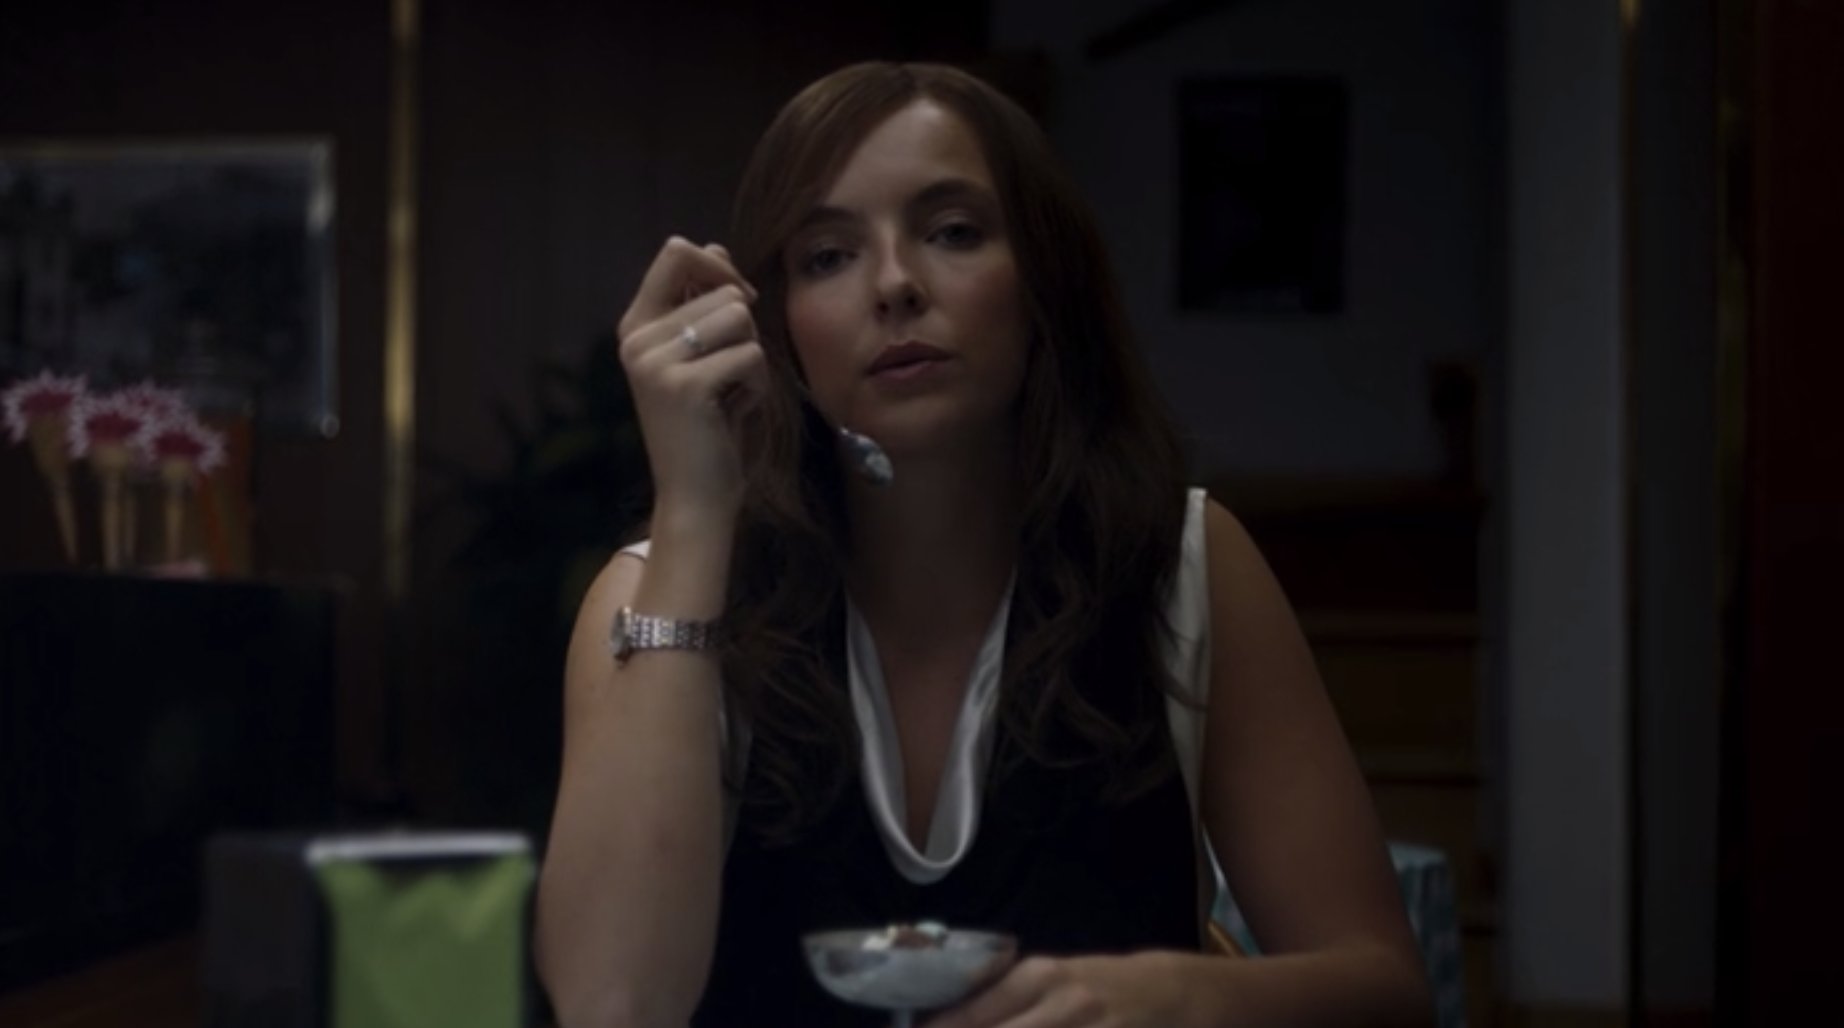 Villanelle staring at a little girl while eating ice cream.